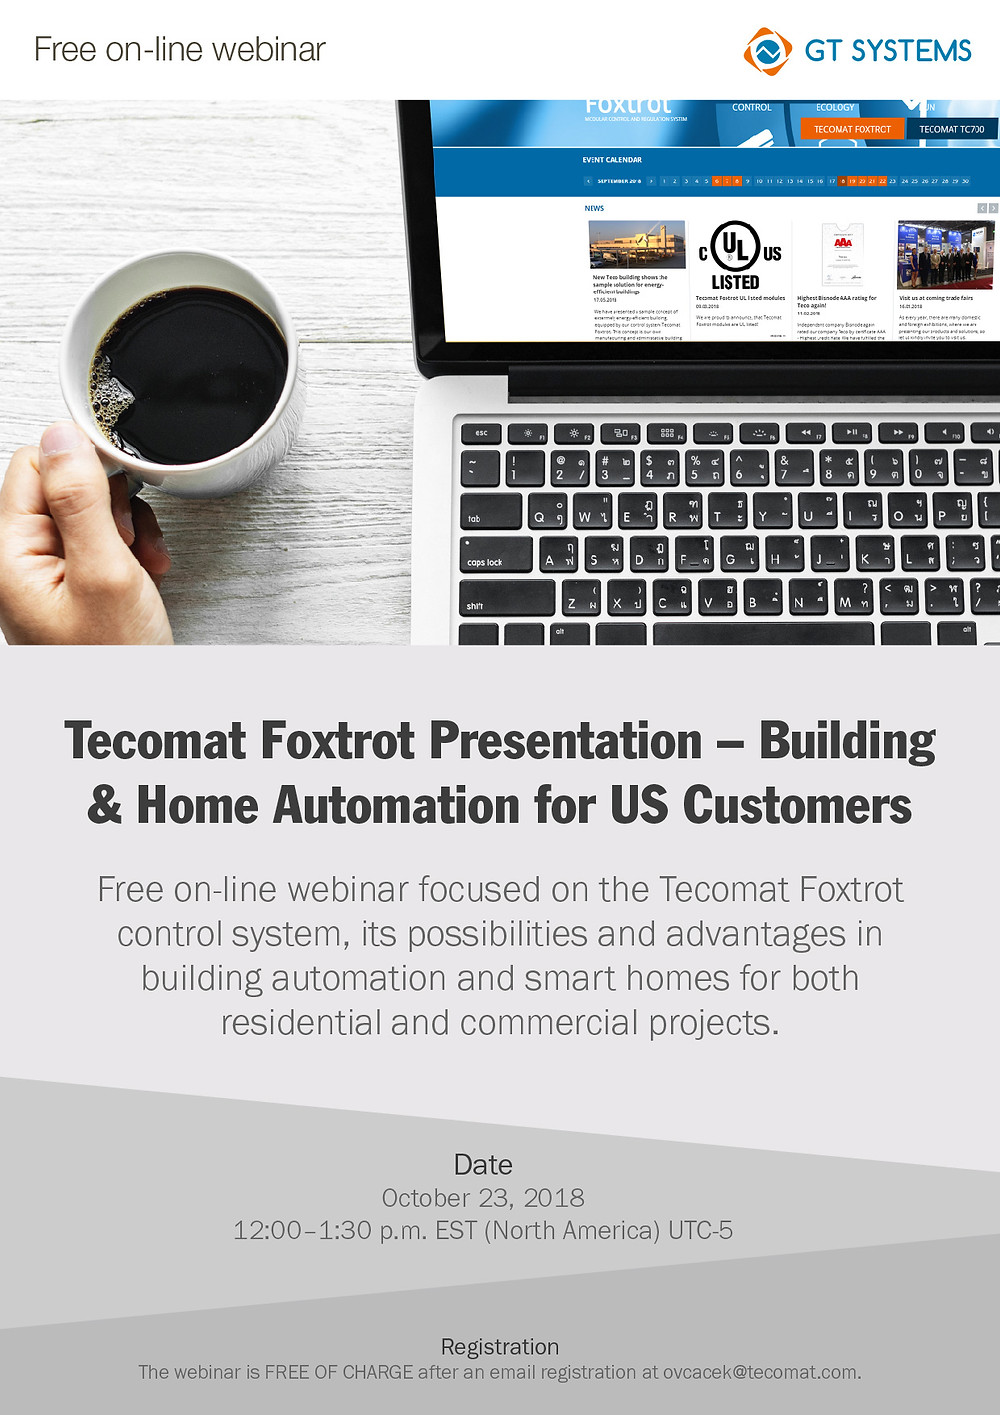 Online webinar: Tecomat Foxtrot Presentation – Building & Home Automation for US Customers